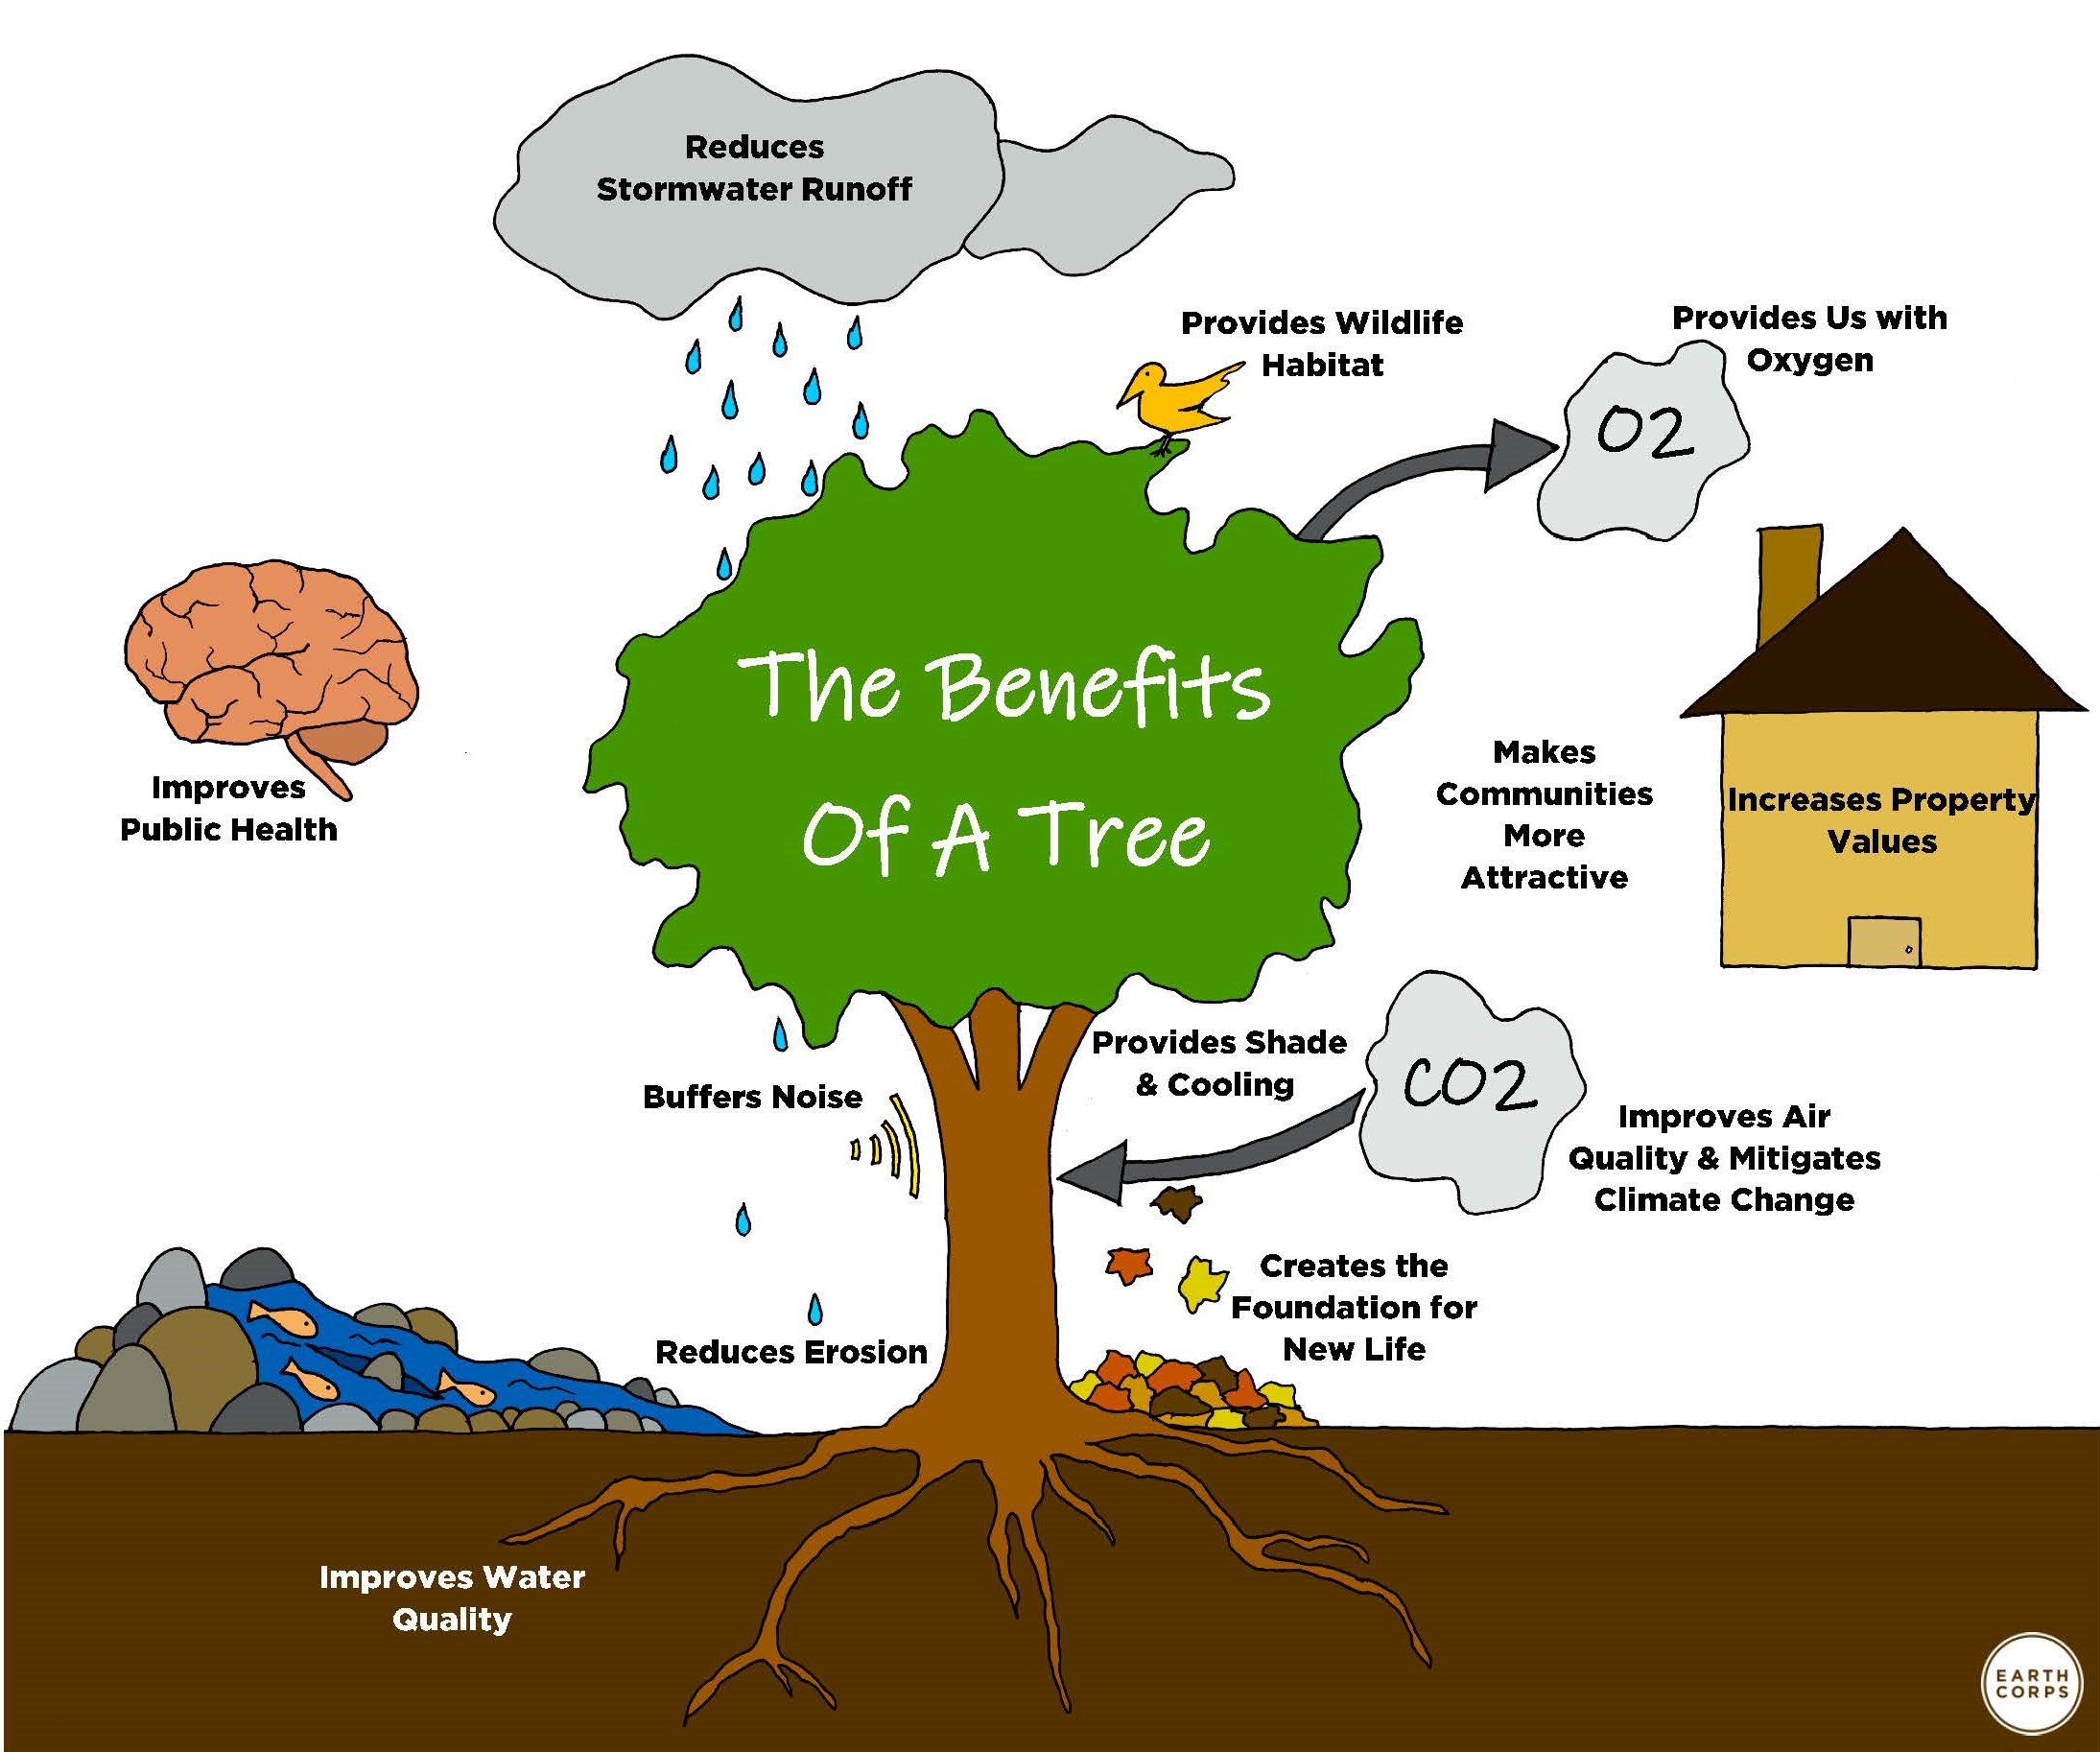 an image listing the benefits or trees